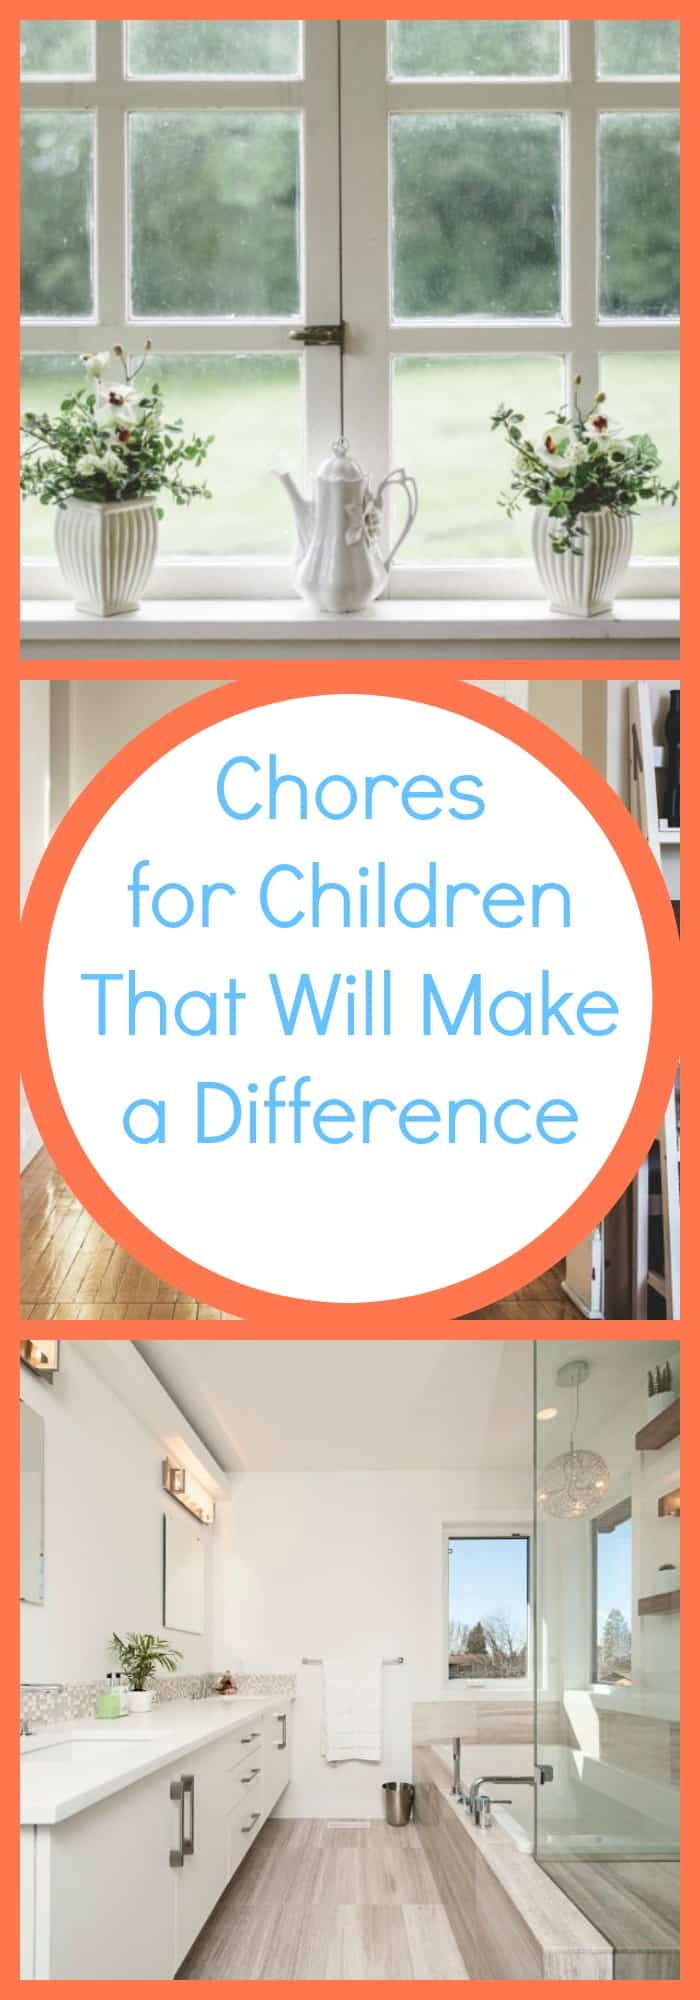 Chores for Children that Will Make a Difference